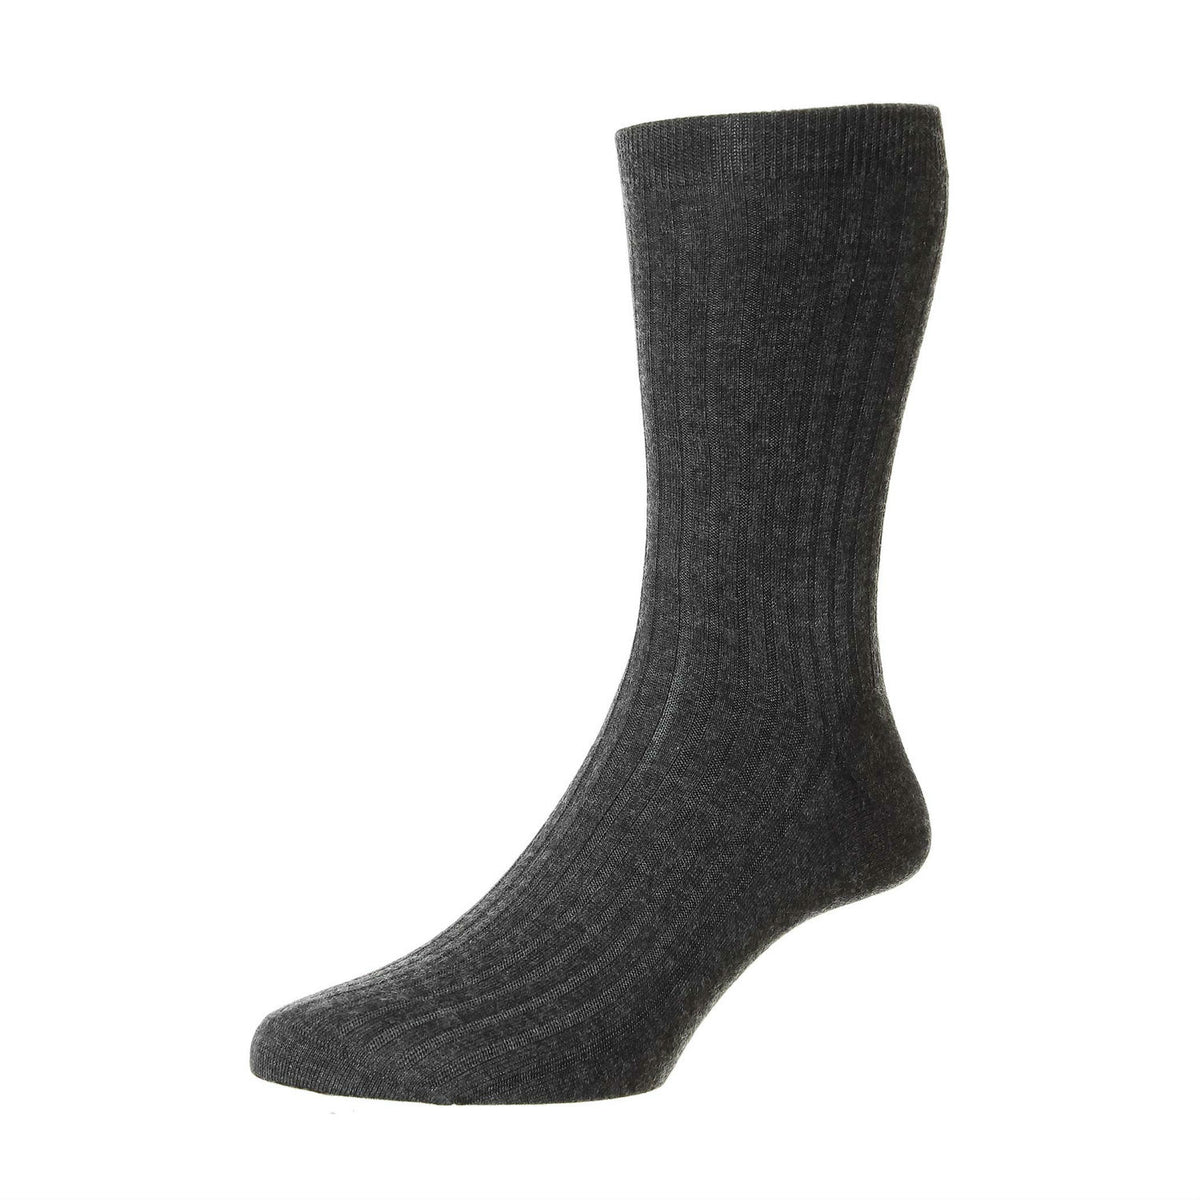 Mens Grey Pure Cashmere Socks | Made in England | Calf Length Sock | shop at The Cashmere Choice London